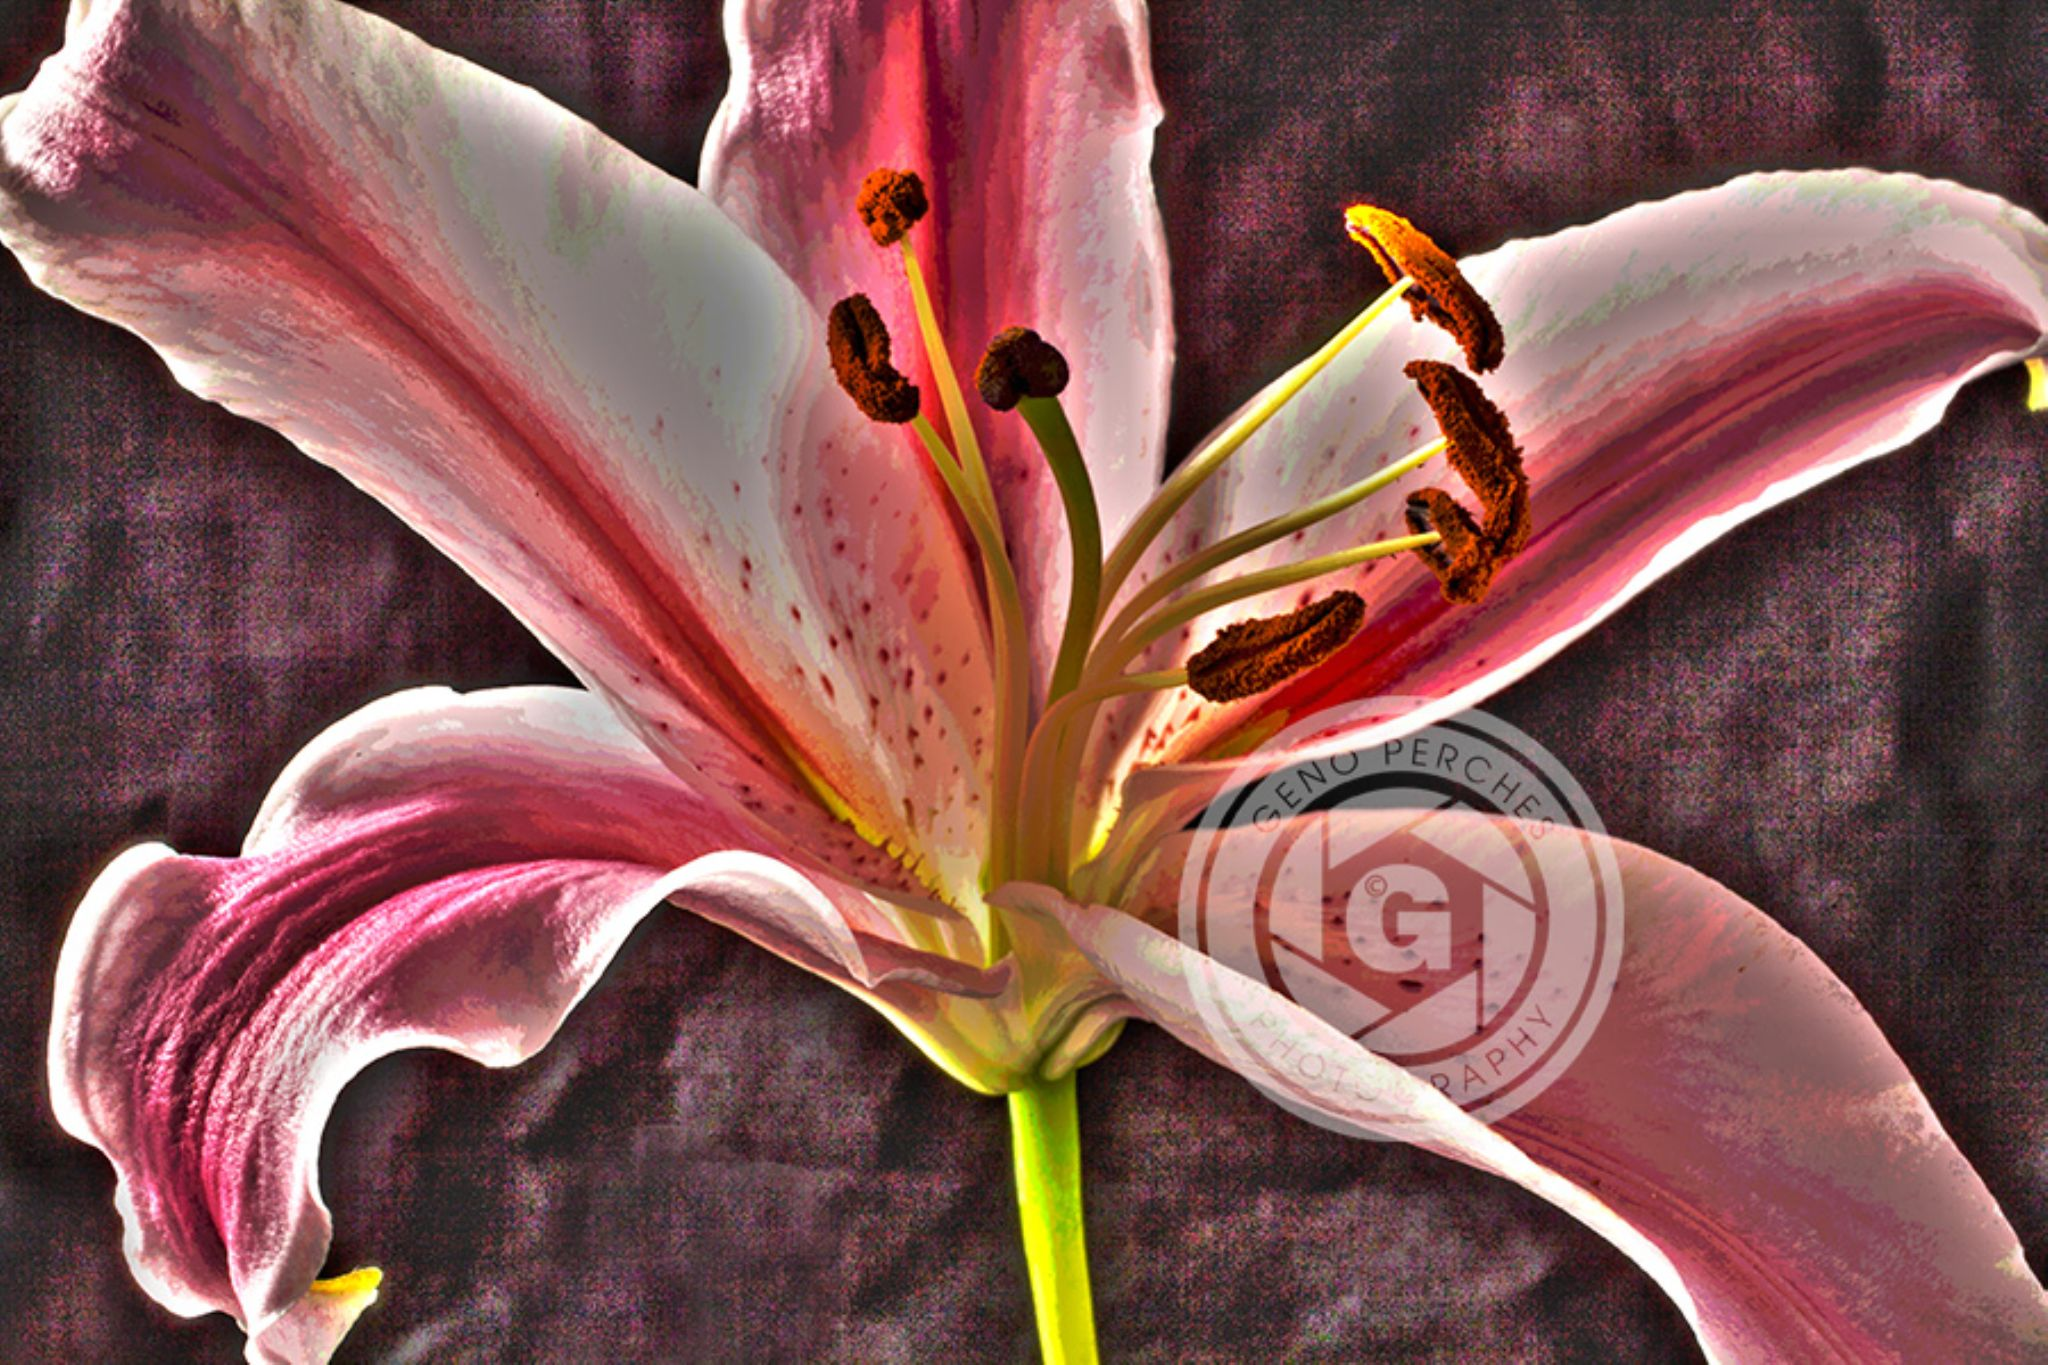 IMG_0604s by Geno Perches